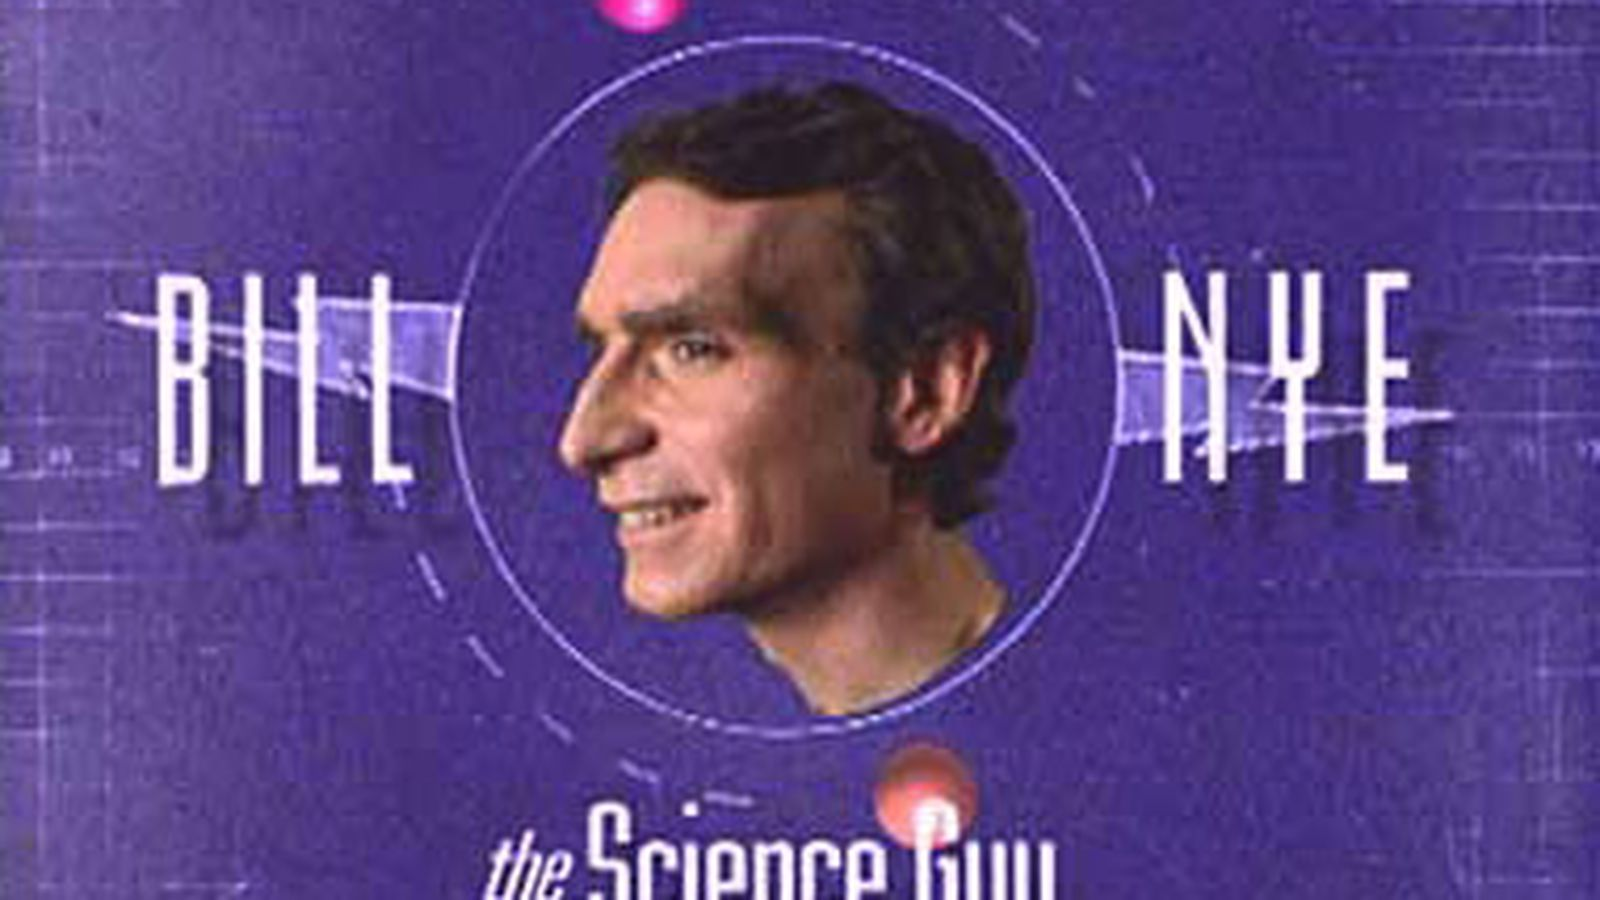 Bill Nye Teases The Return Of Bill Nye The Science Guy